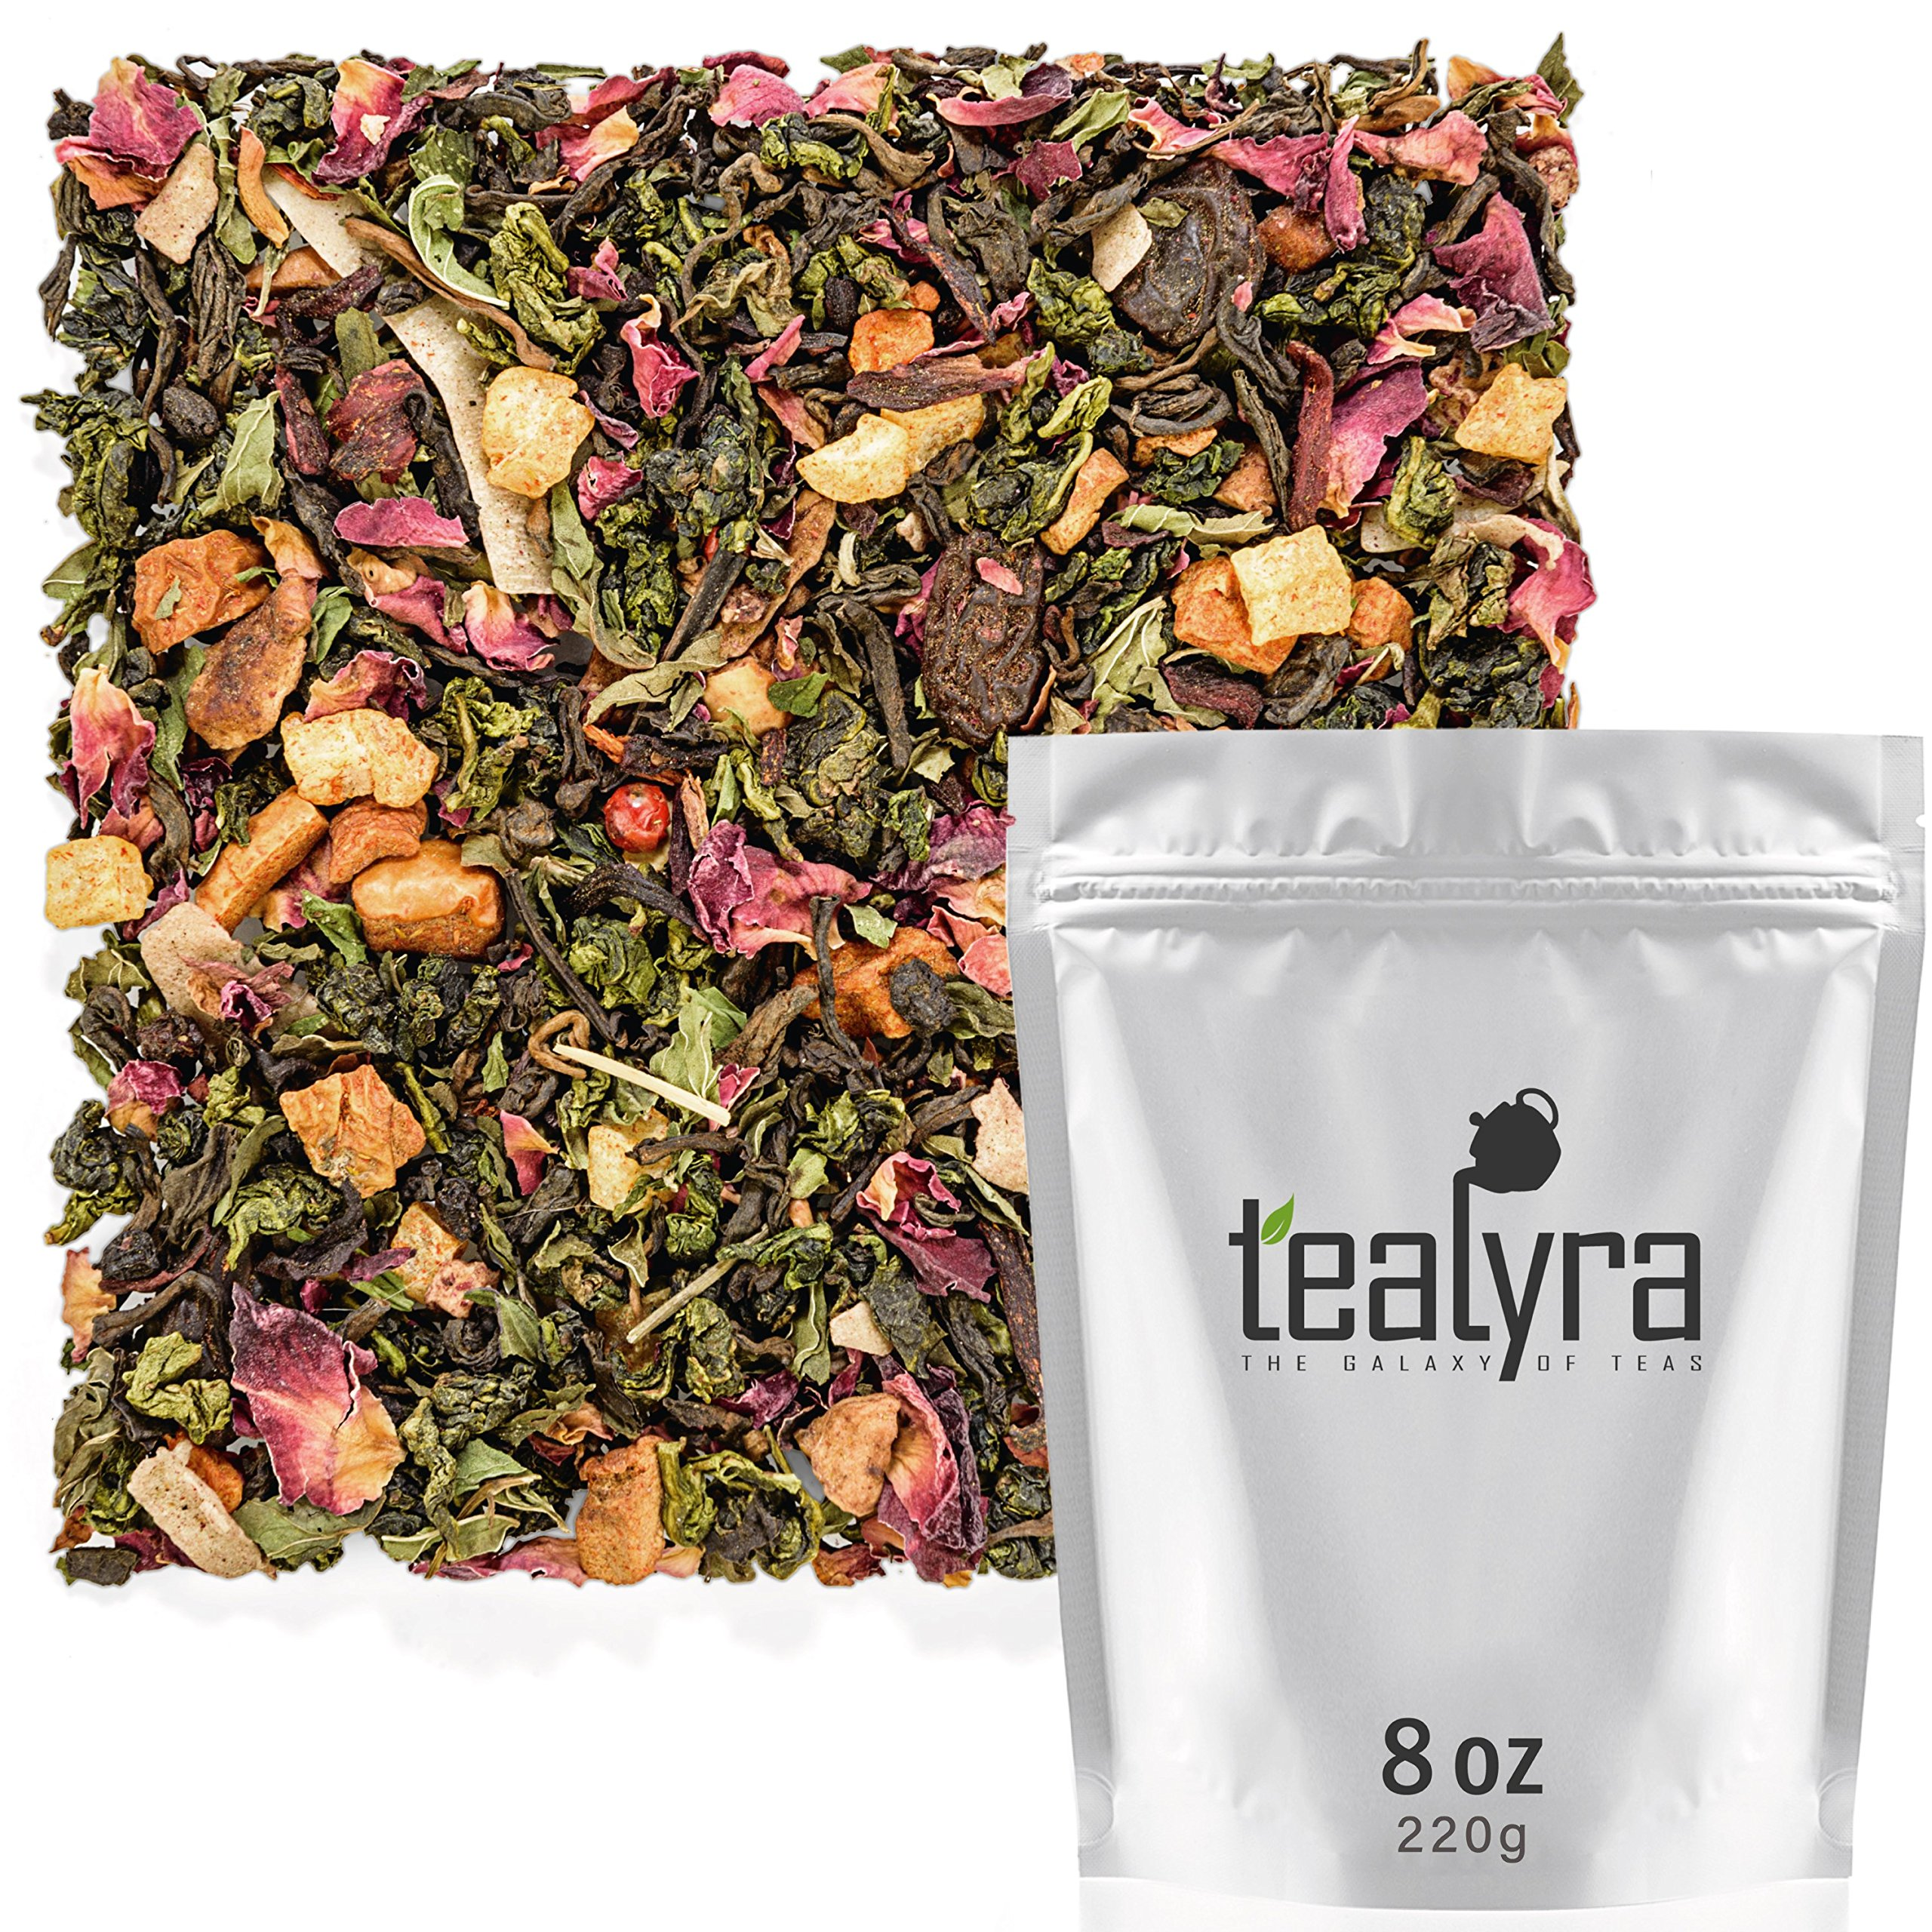 Tealyra - Berry Rose Slenderize - Pu Erh 5 Year Aged with Green Oolong - Loose Leaf Tea Blend - Diet - Weight Loss - Wellness Healthy Tea - All Natural Ingredients - 220g (8-ounce) by Tealyra